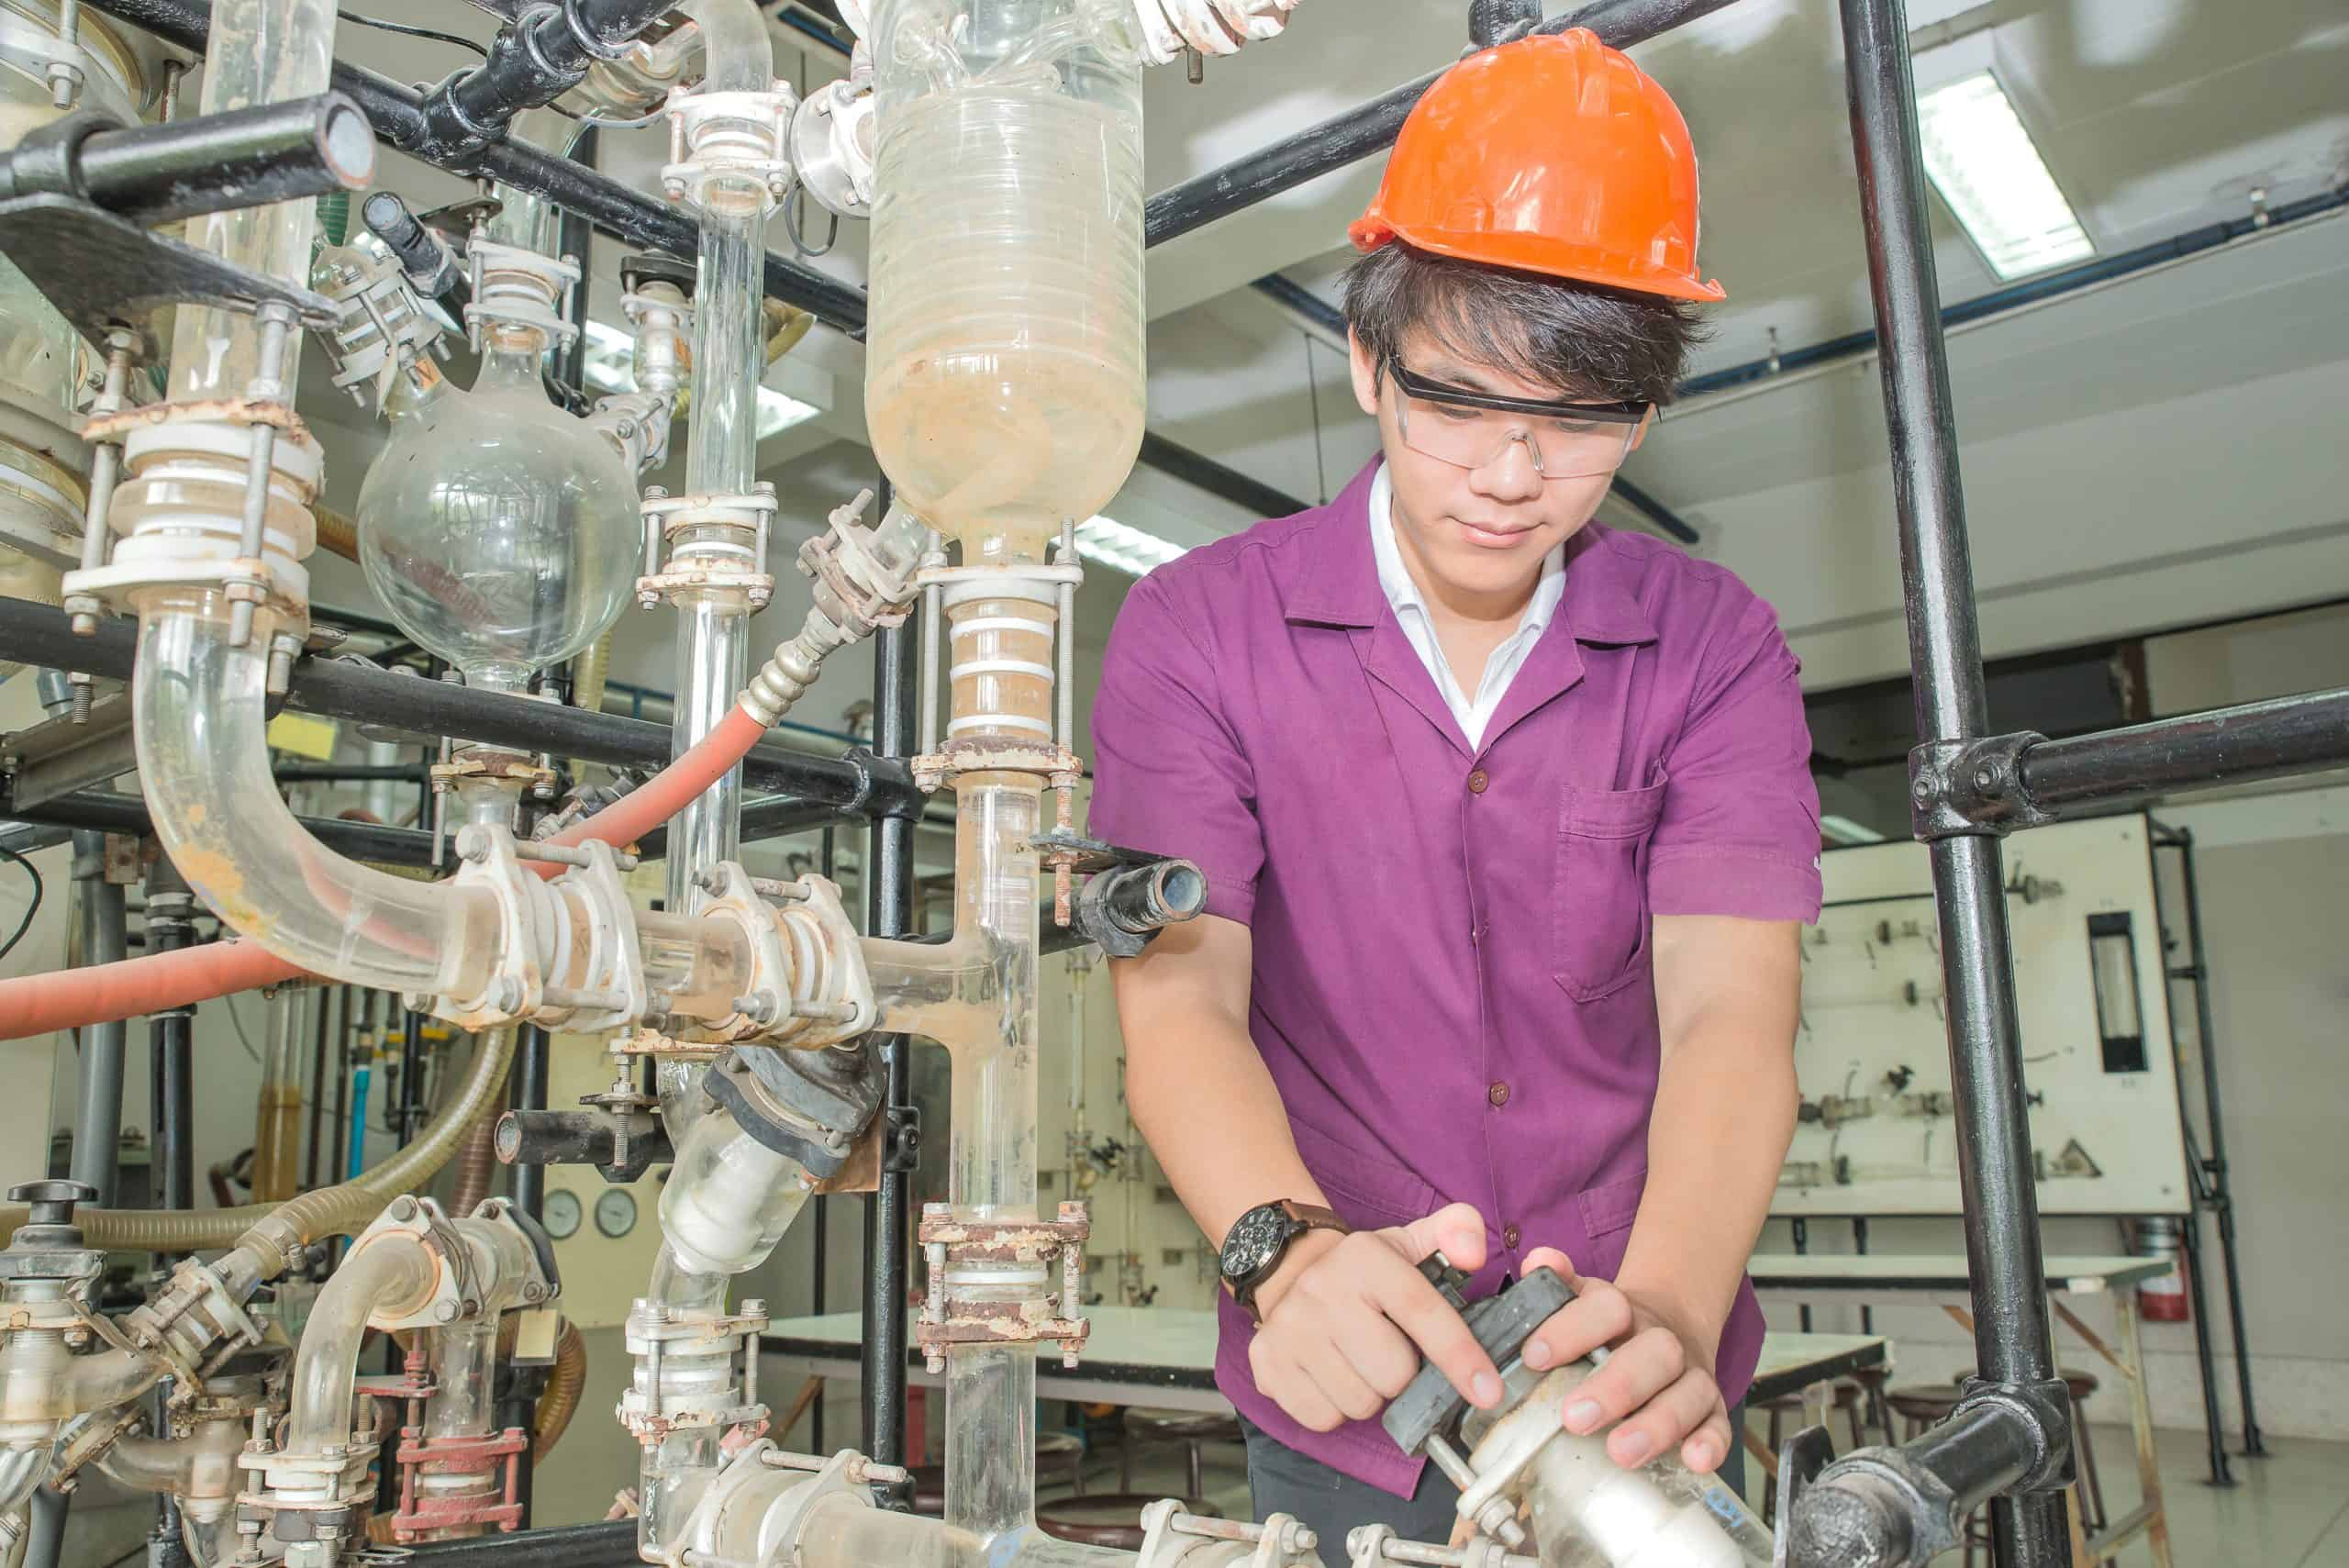 Chemical engineer student turning pipeline pump for training in laboratory